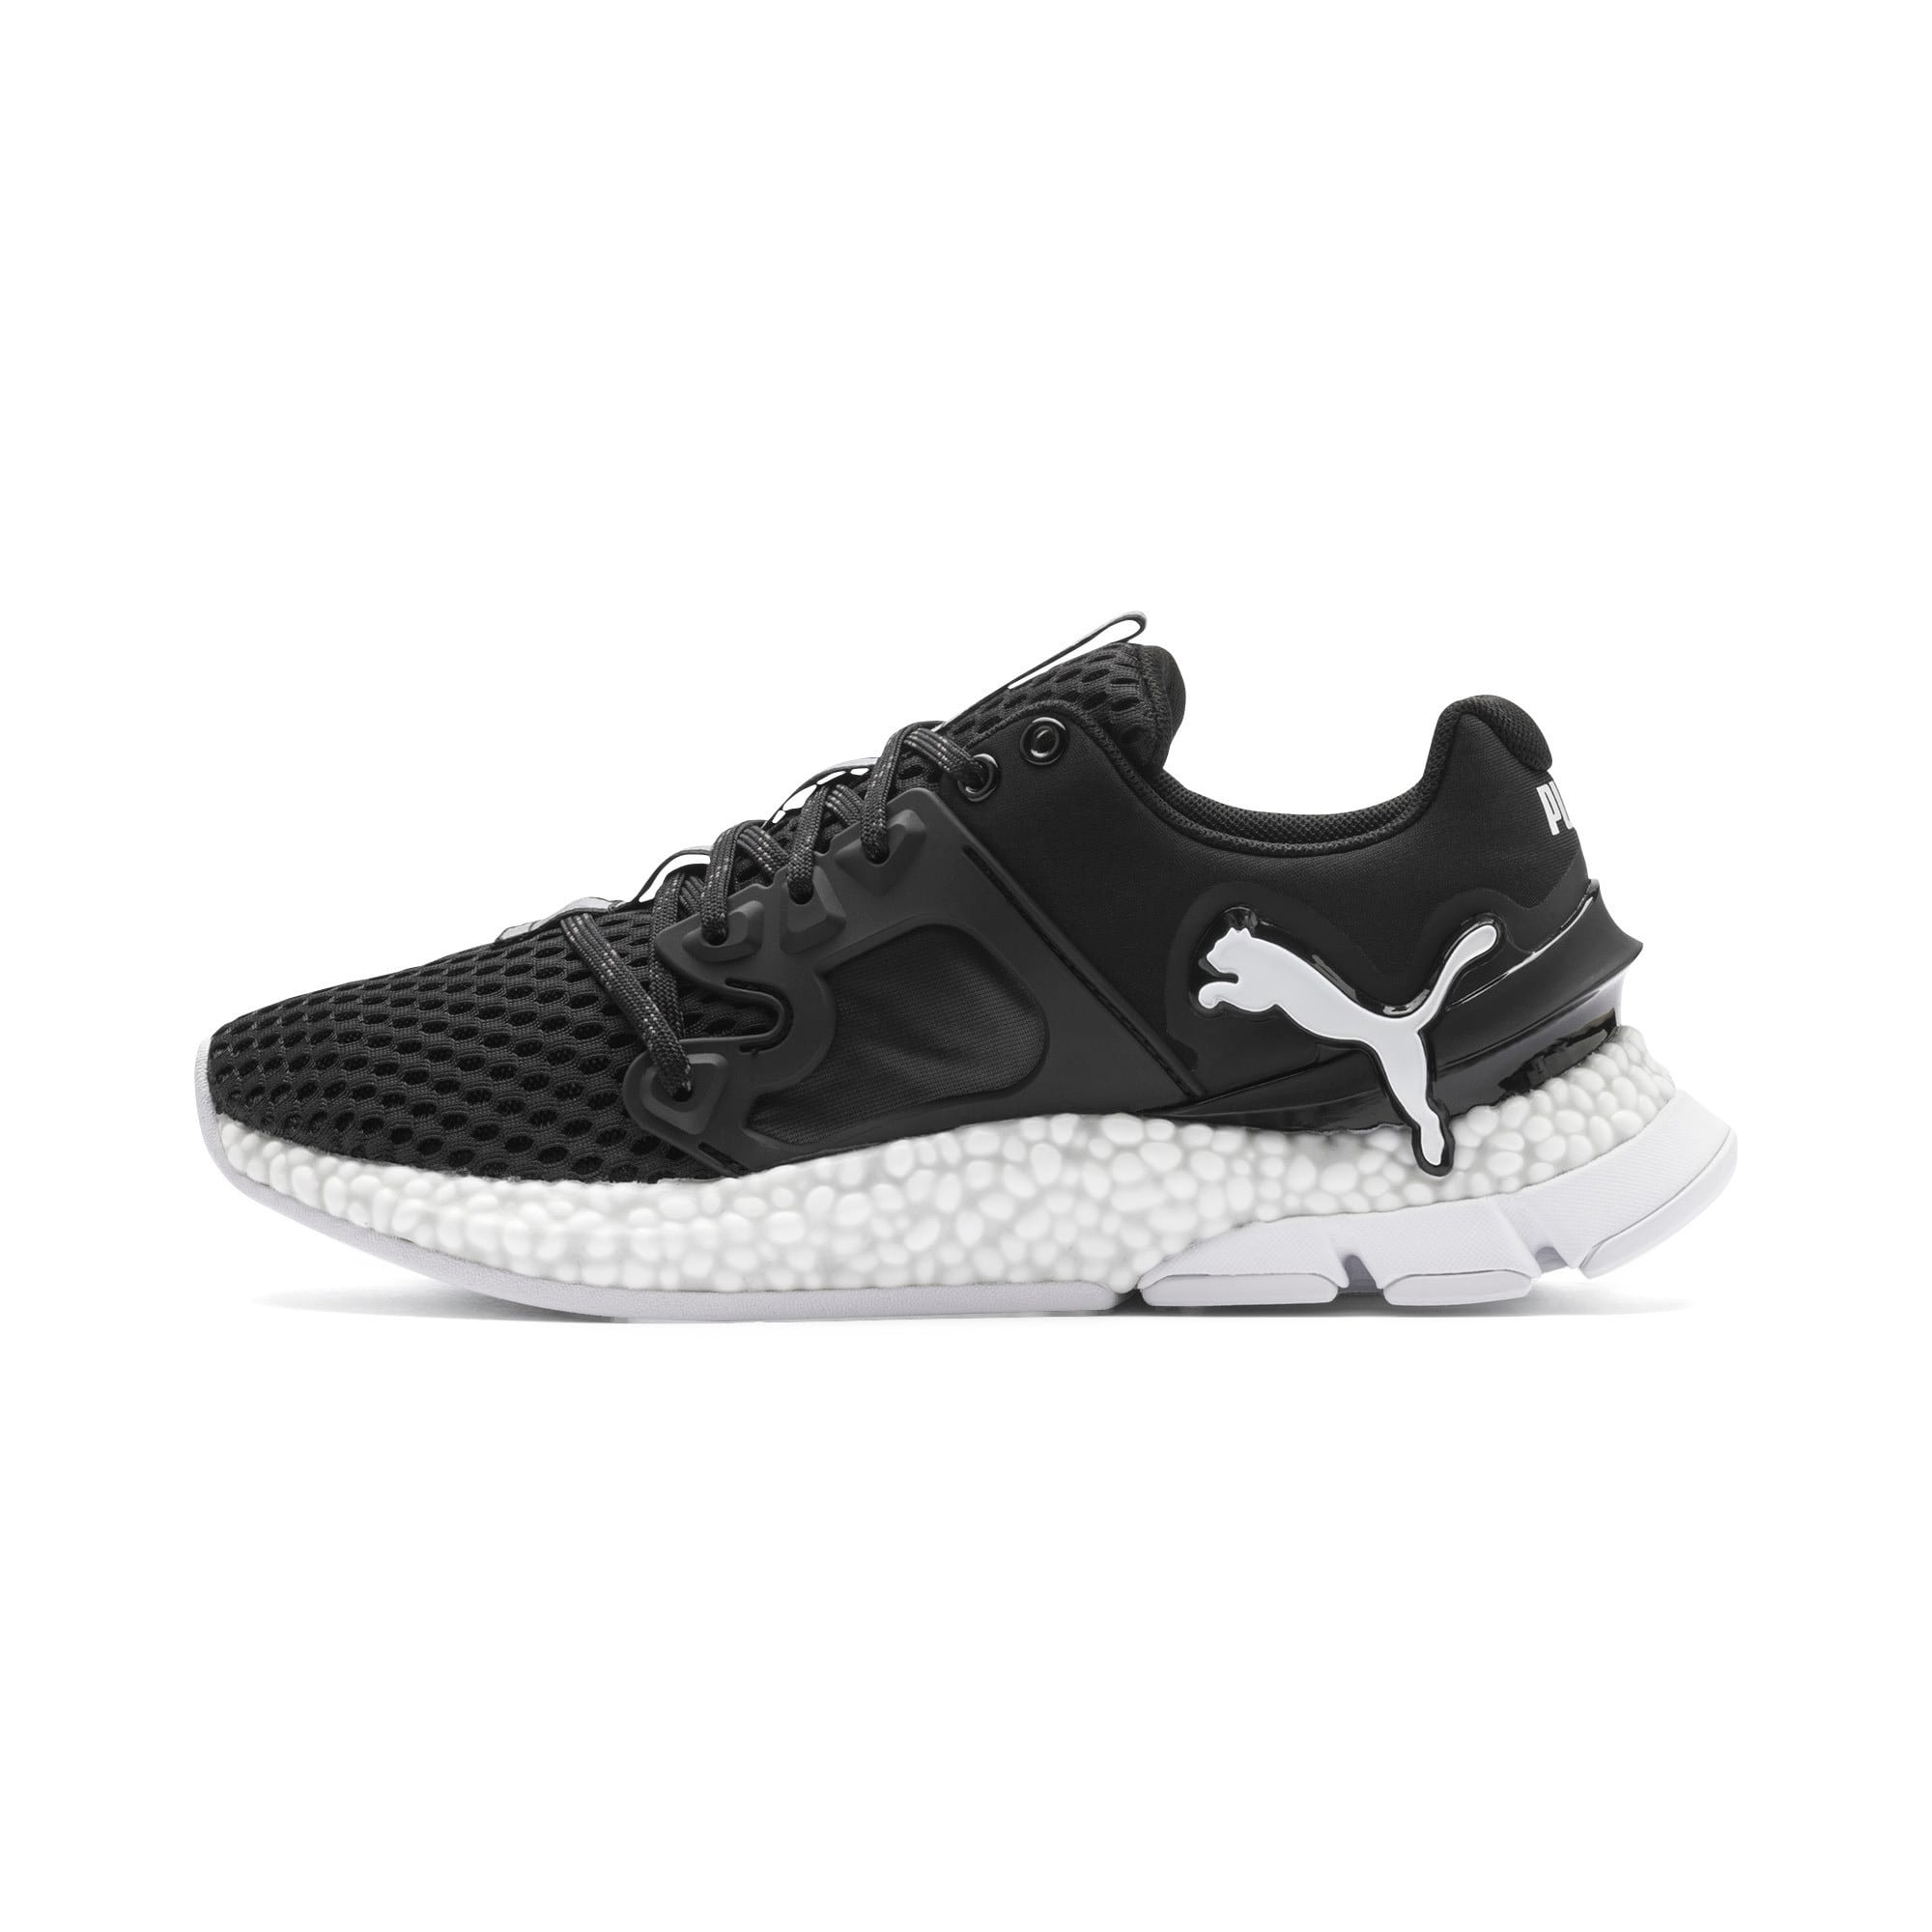 Thumbnail 1 of HYBRID Sky Women's Running Shoes, Puma Black-Puma White, medium